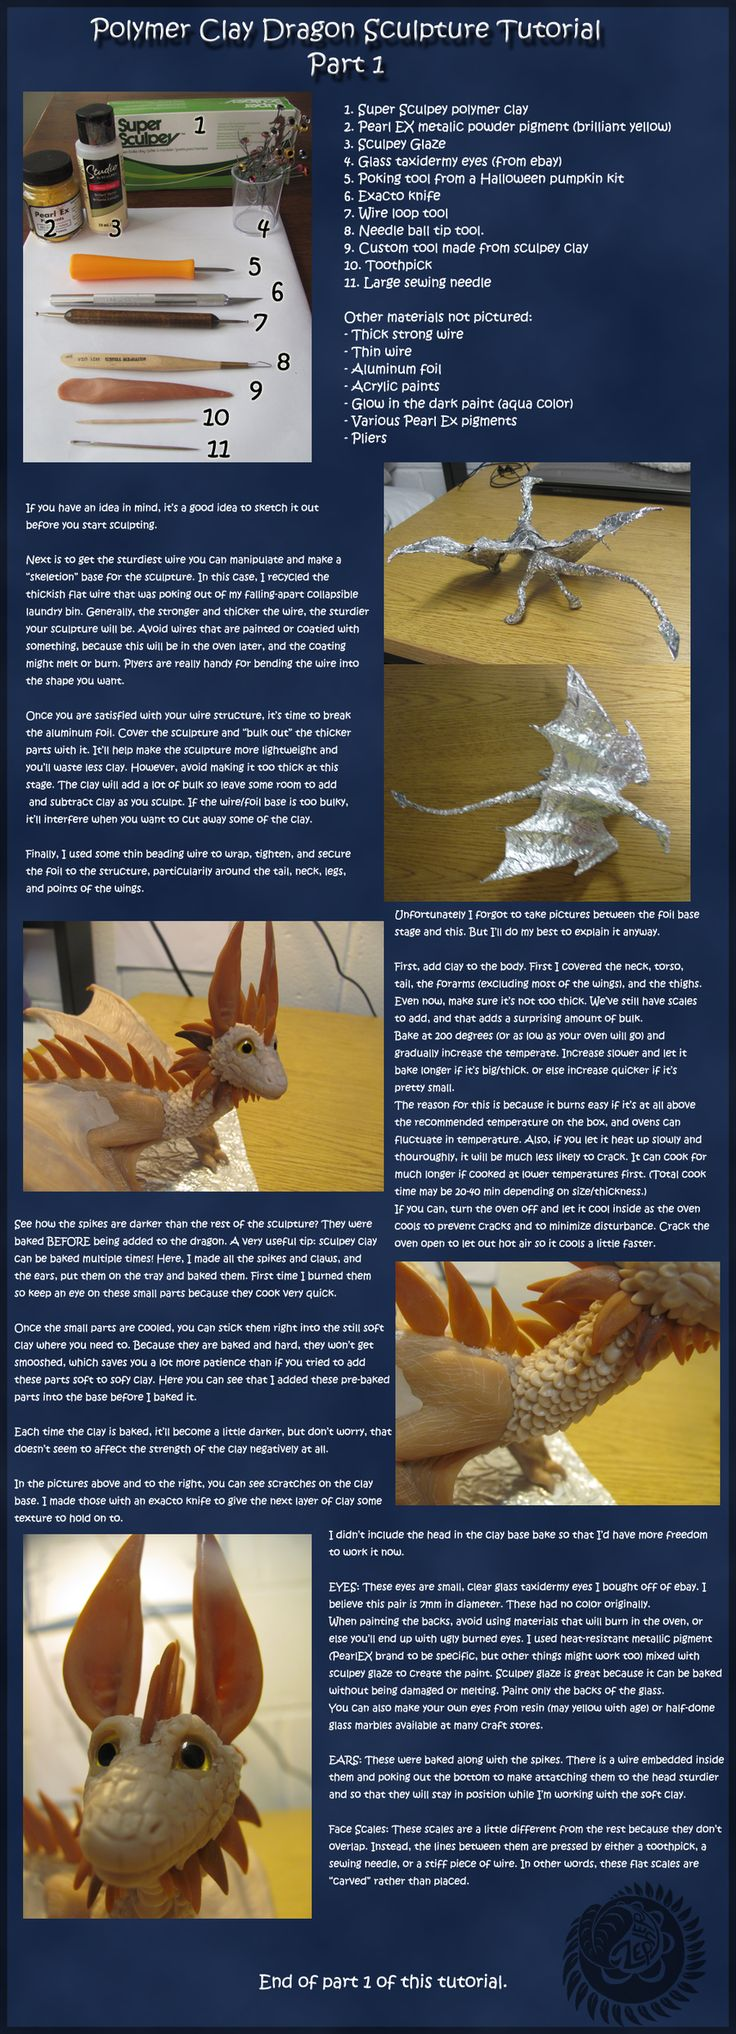 Dragon Sculpture Tutorial: Part 1 by OoZepheroO.deviantart.com on @deviantART